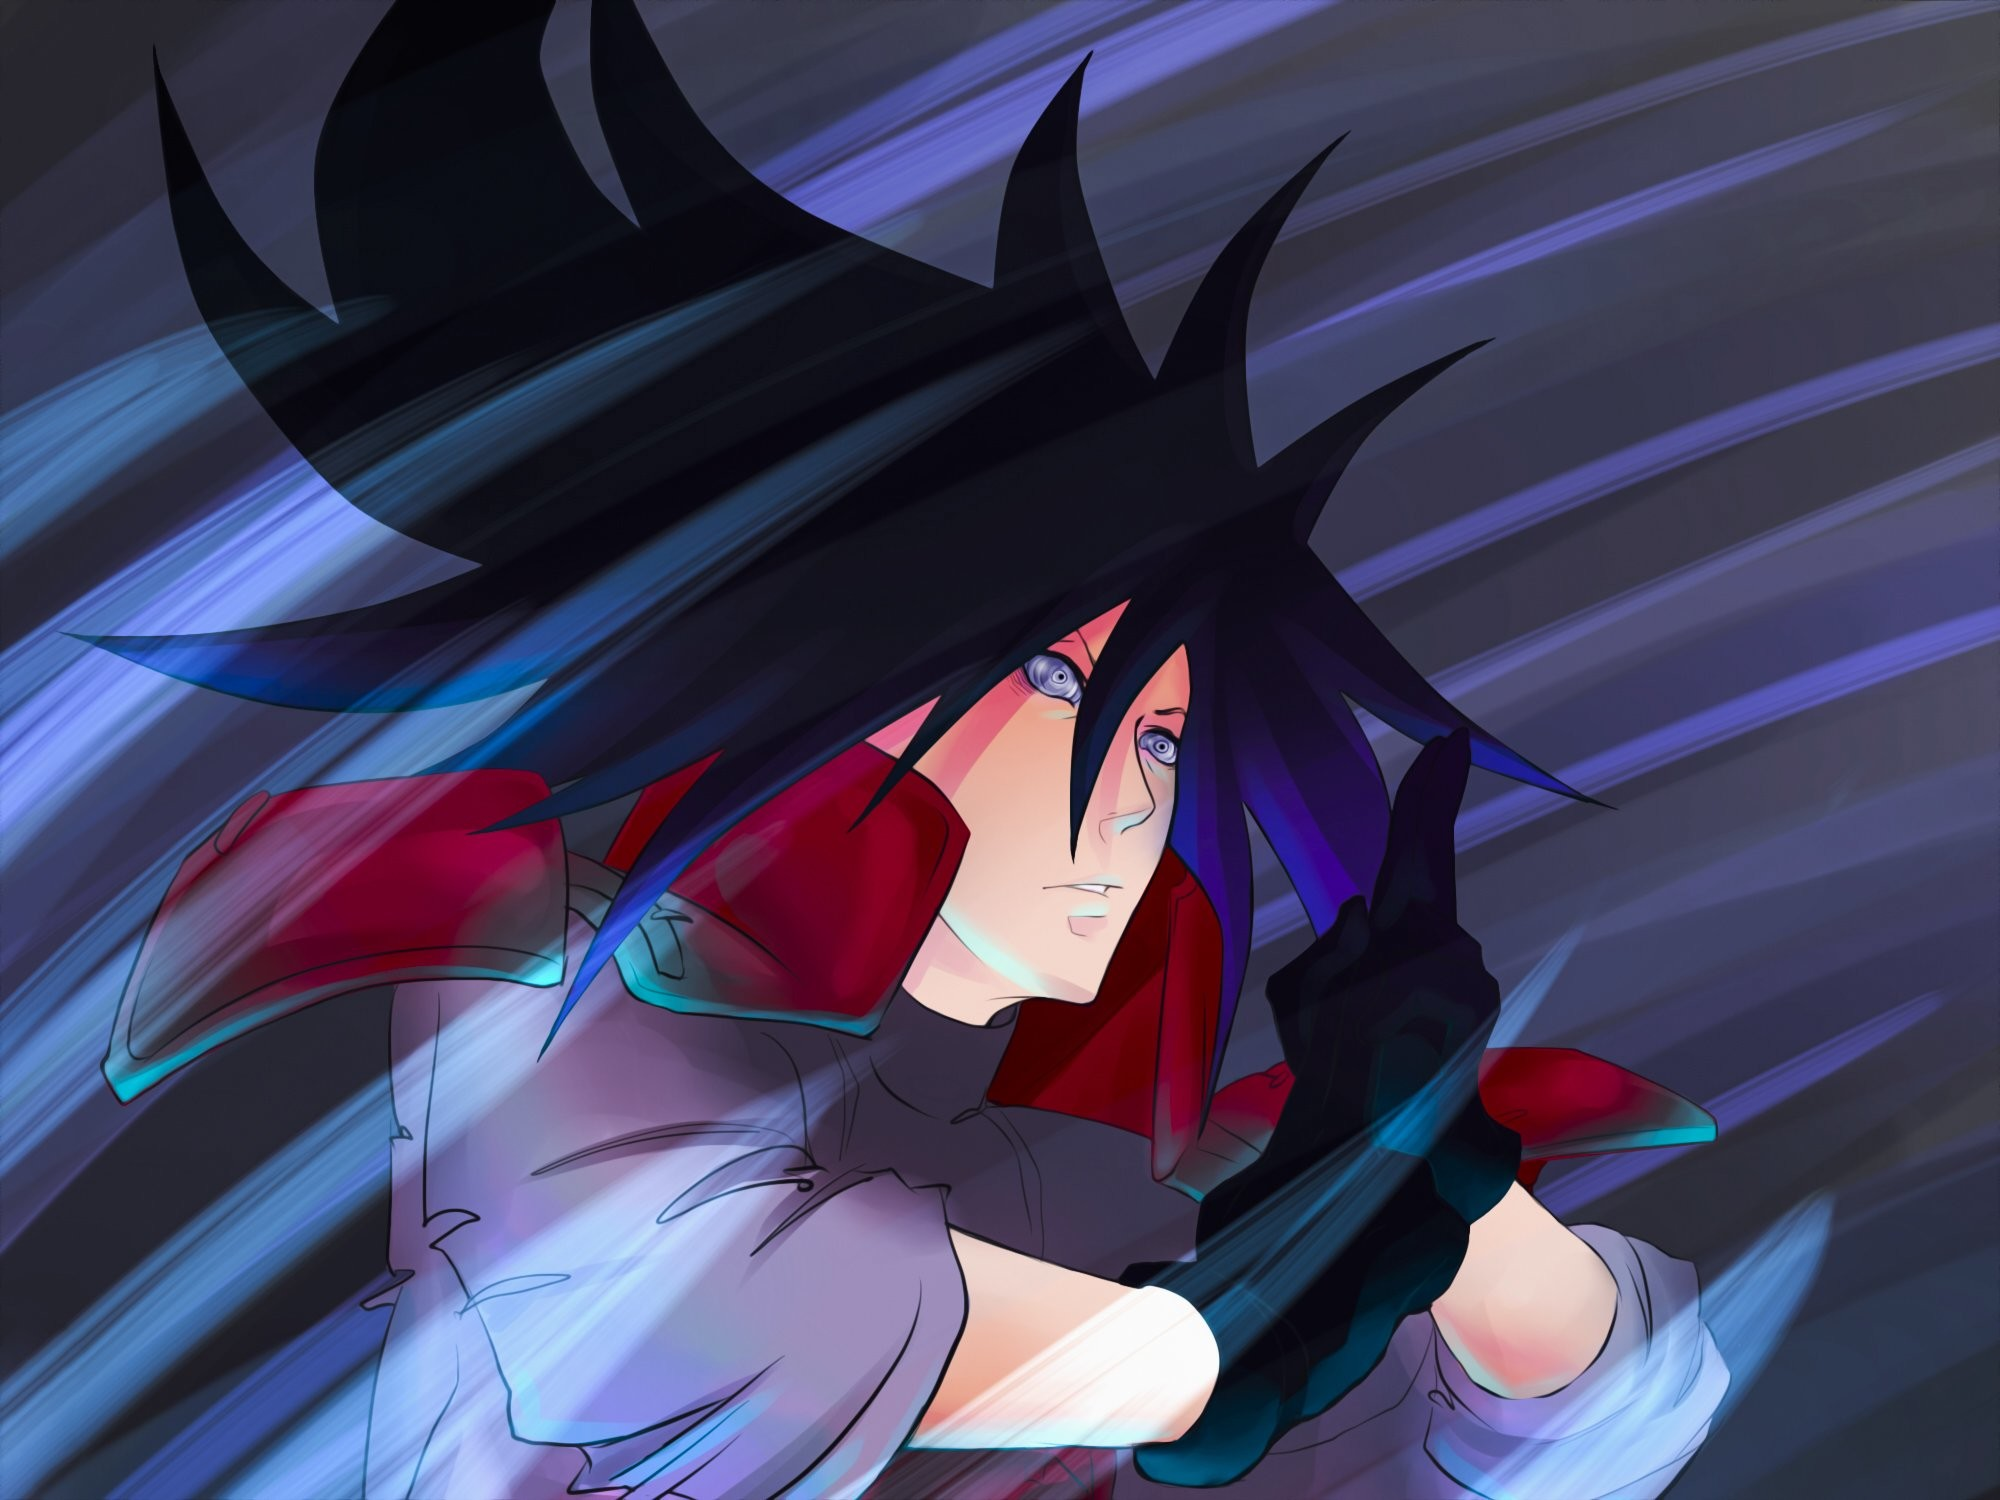 Res: 2000x1500, Uchiha Madara Rinnegan Wallpaper hd Naruto Uchiha Madara Rinnegan